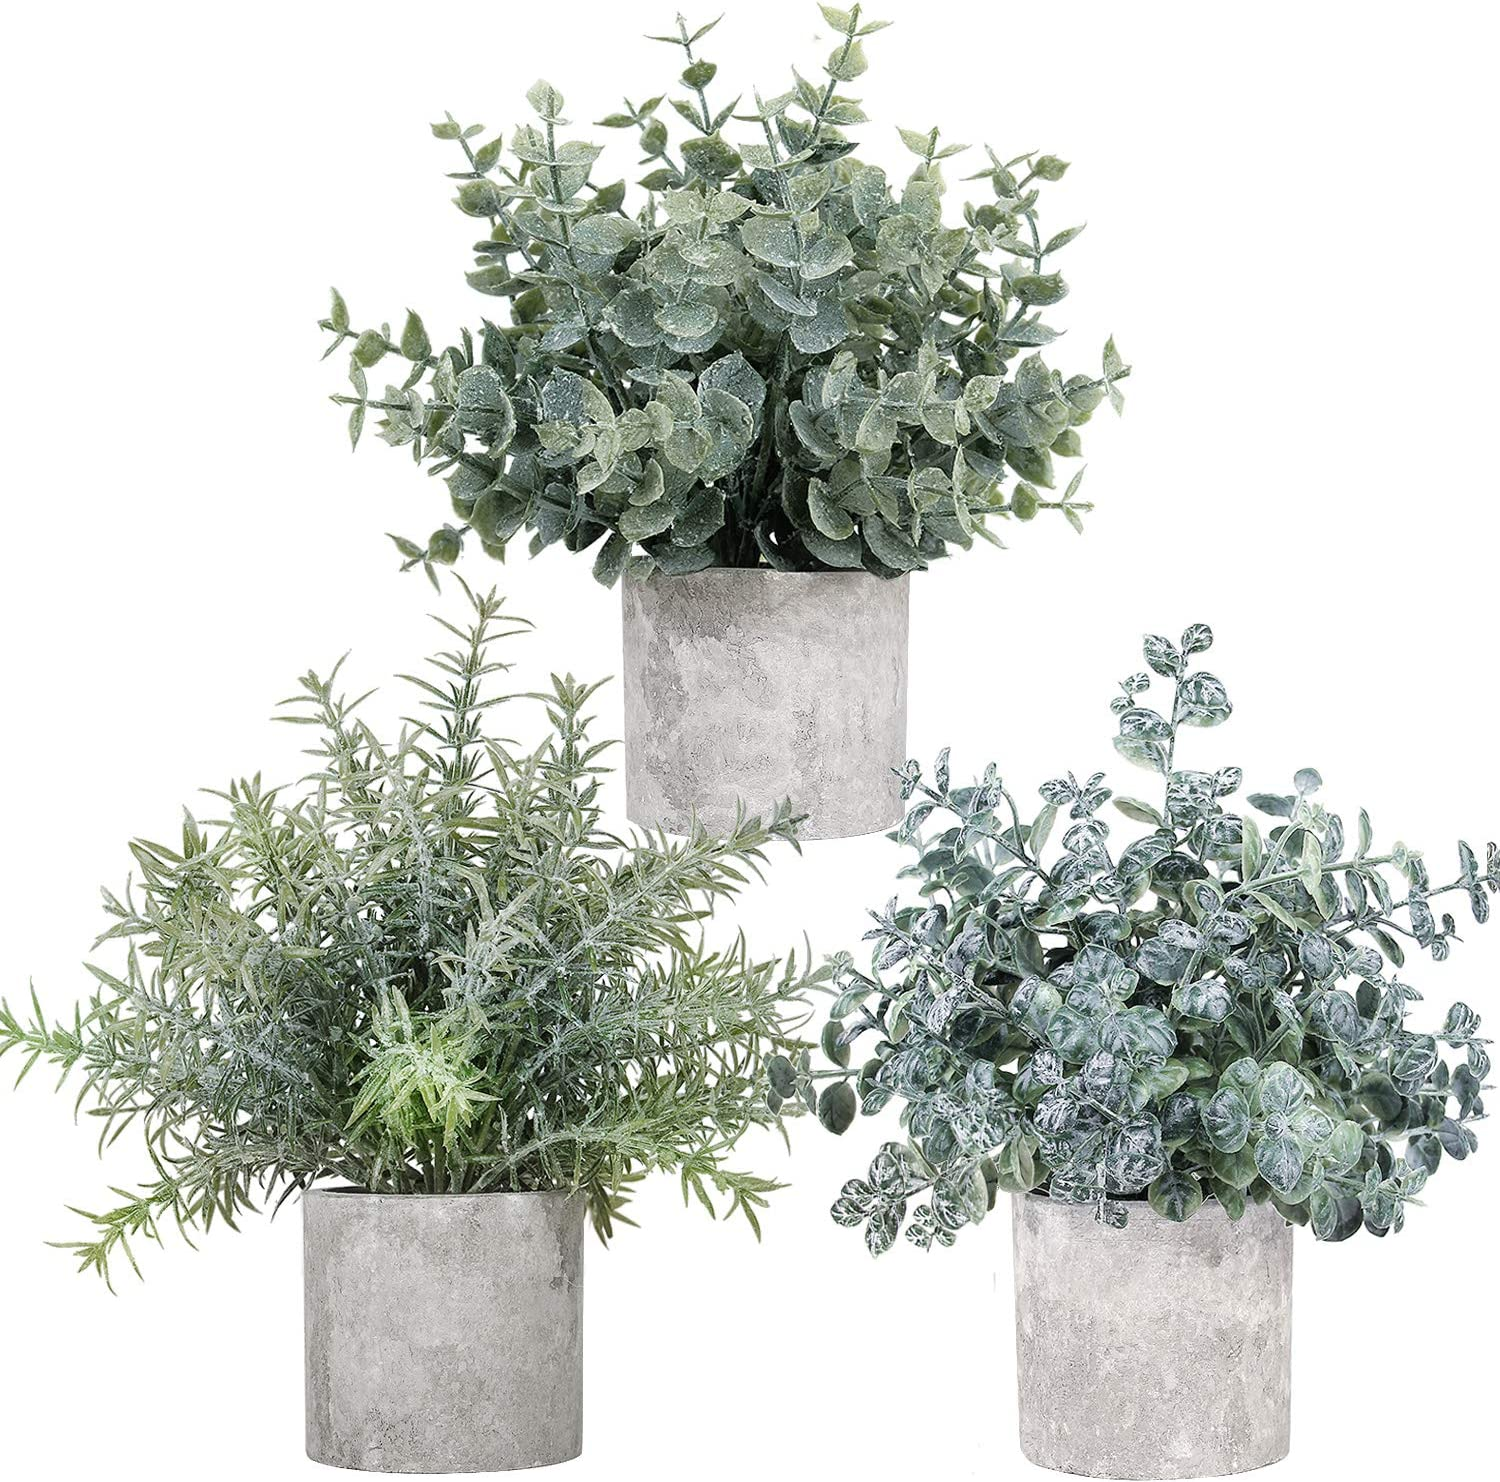 LELEE Artificial Potted Plants Mini Fake Plants, 3 Pack Small Eucalyptus Potted Faux Rosemary Green Decorative Plant with Pot for Home Decor, Indoor, Office, Shelf, Desk, Table Decoration